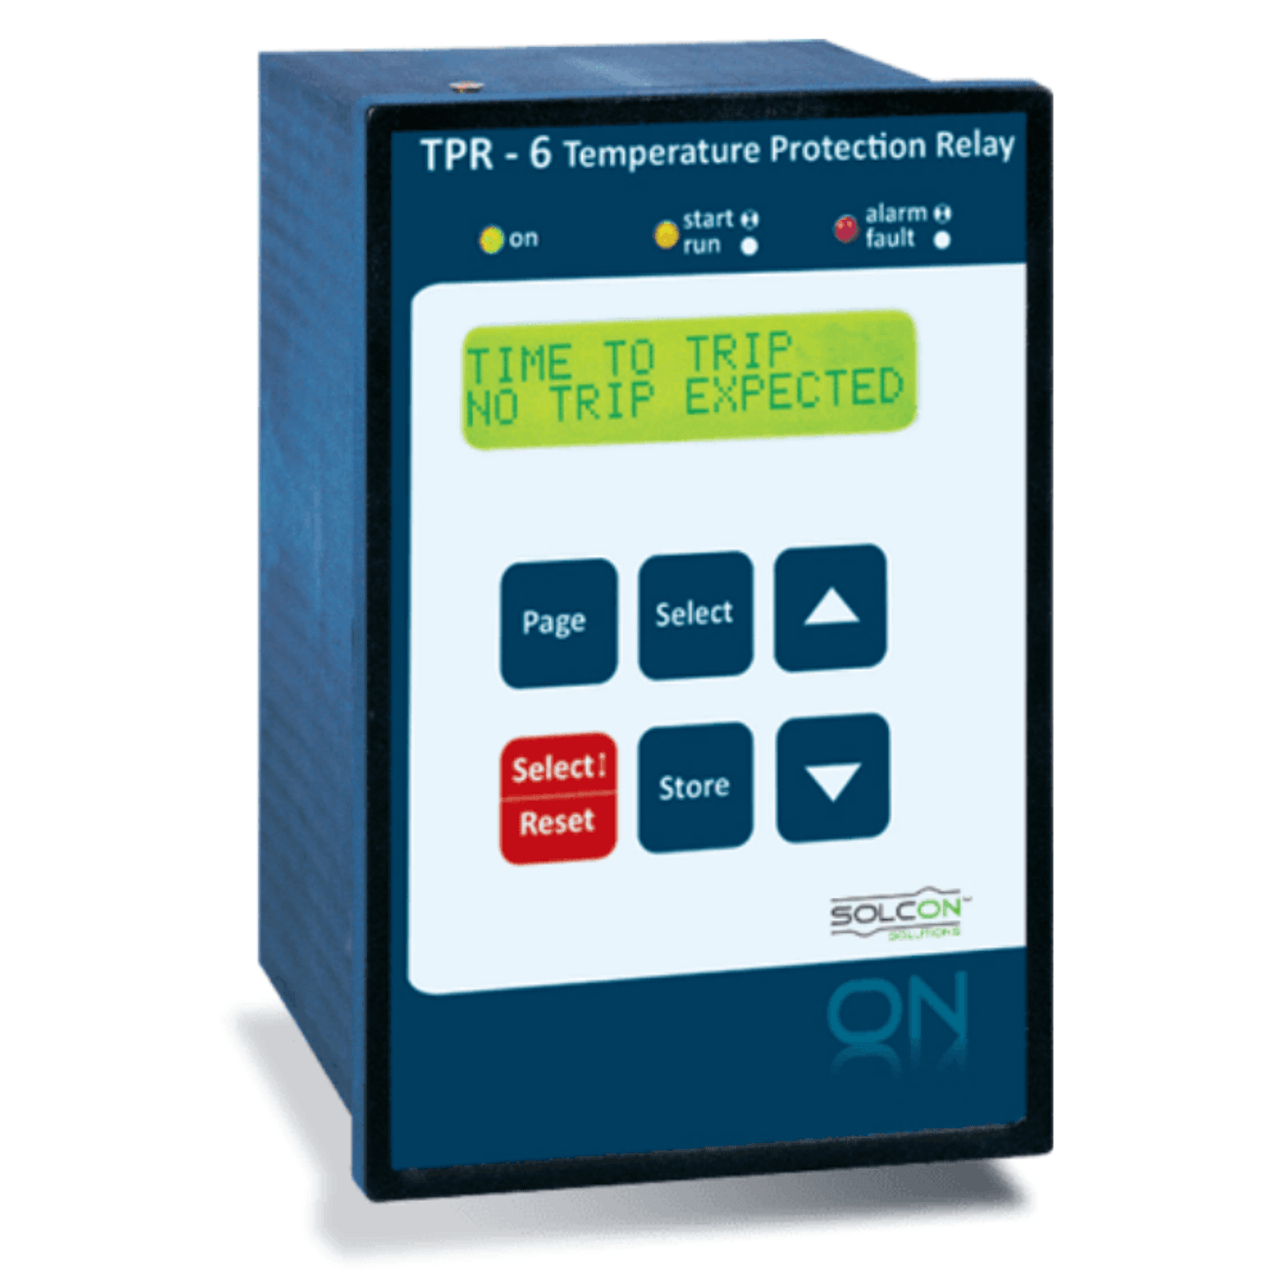 TPR-6: Temperature Protection Relay